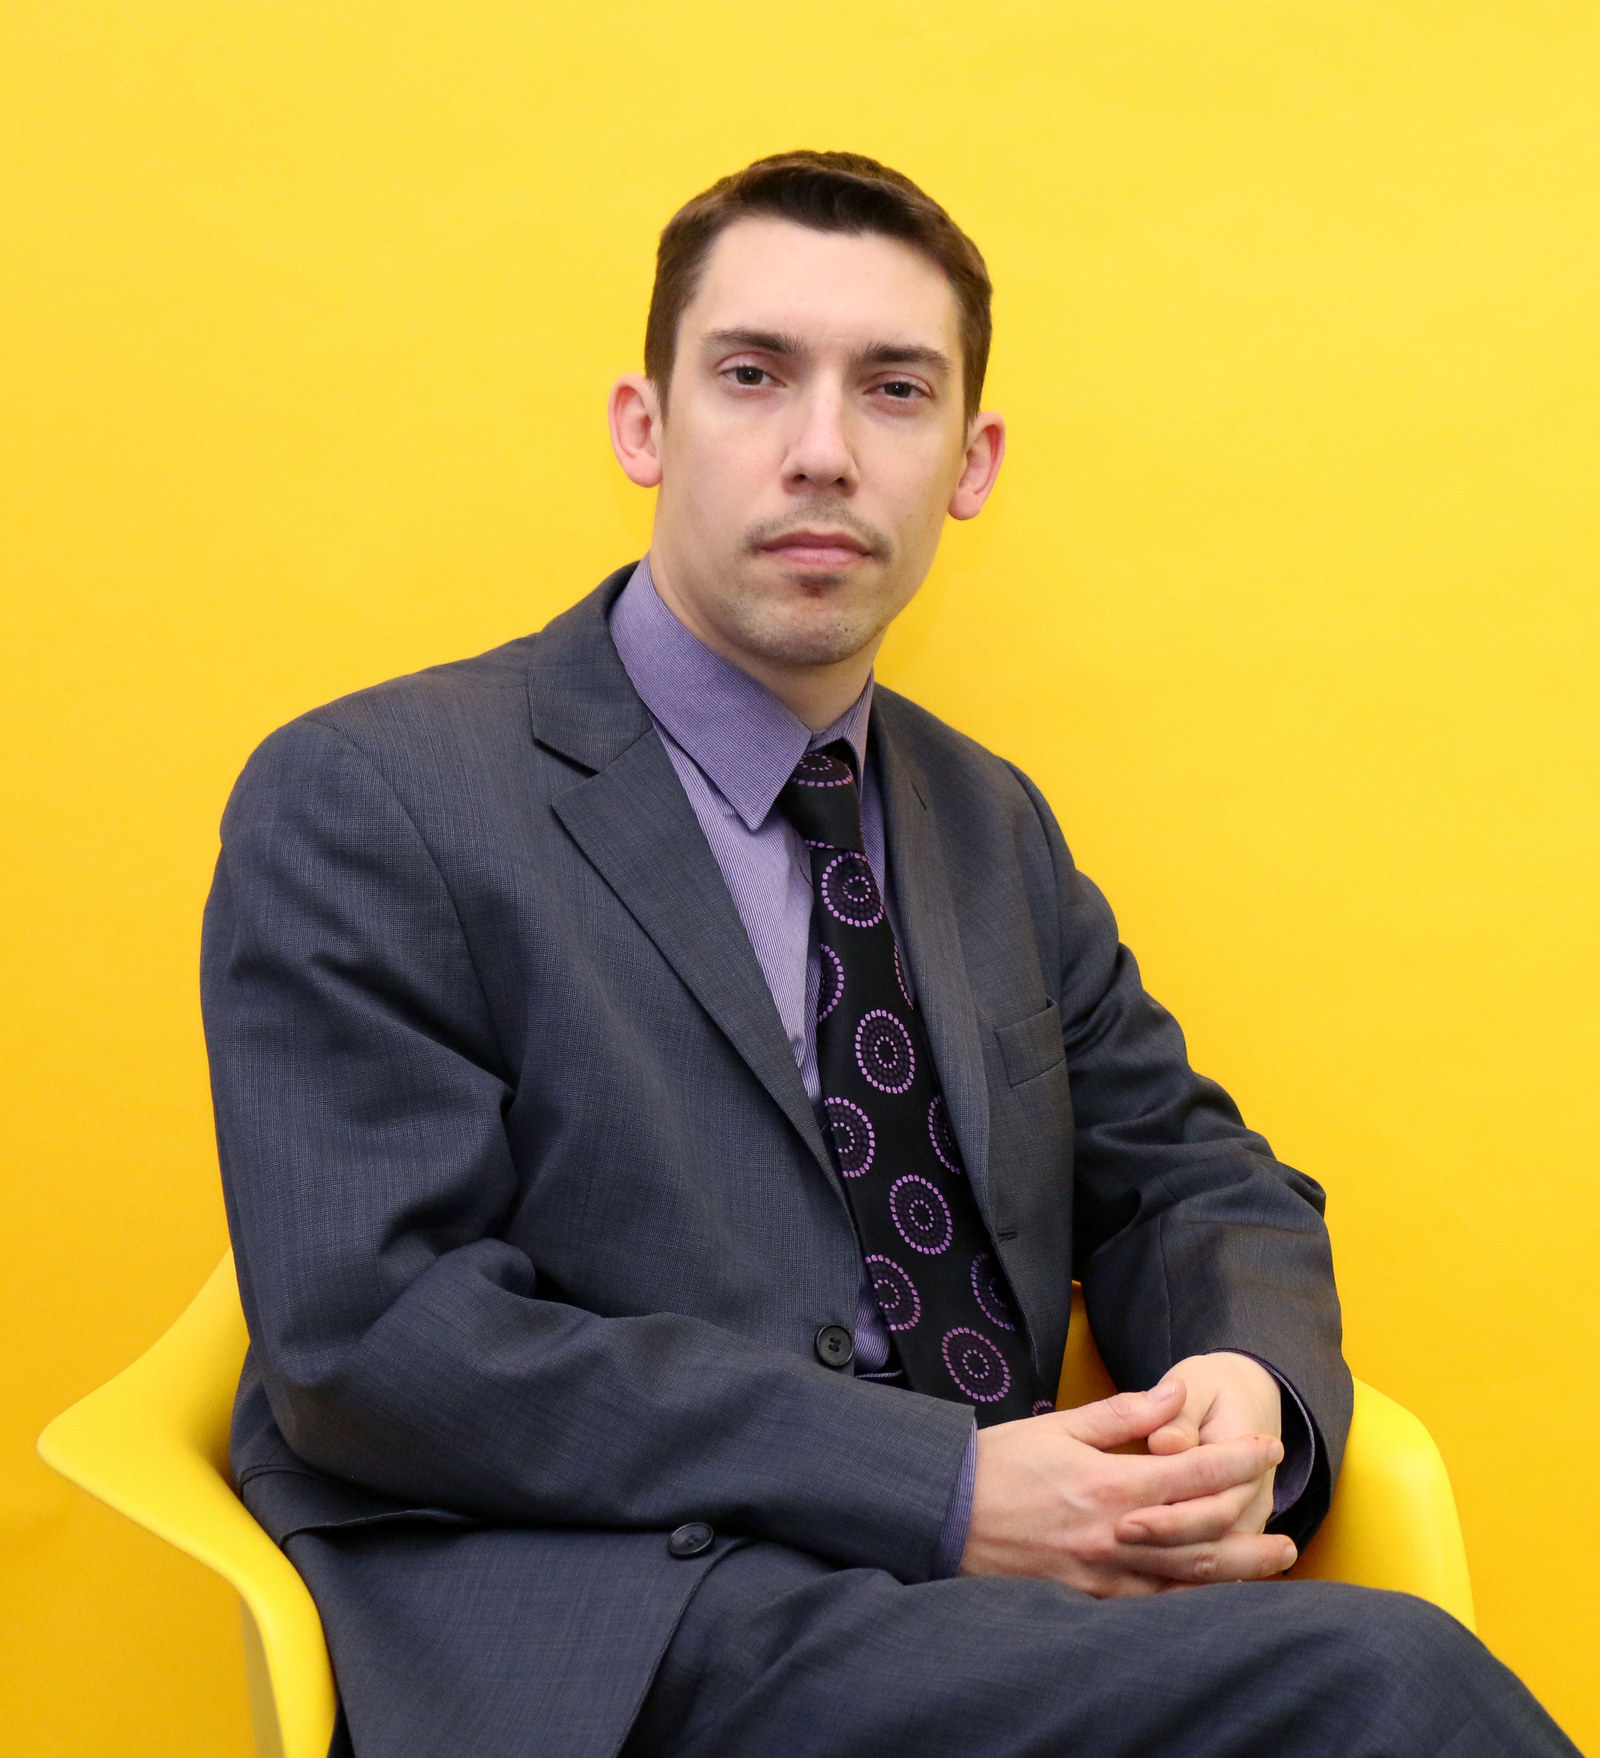 Meet Britain's First HIV-Positive Parliamentary Candidate